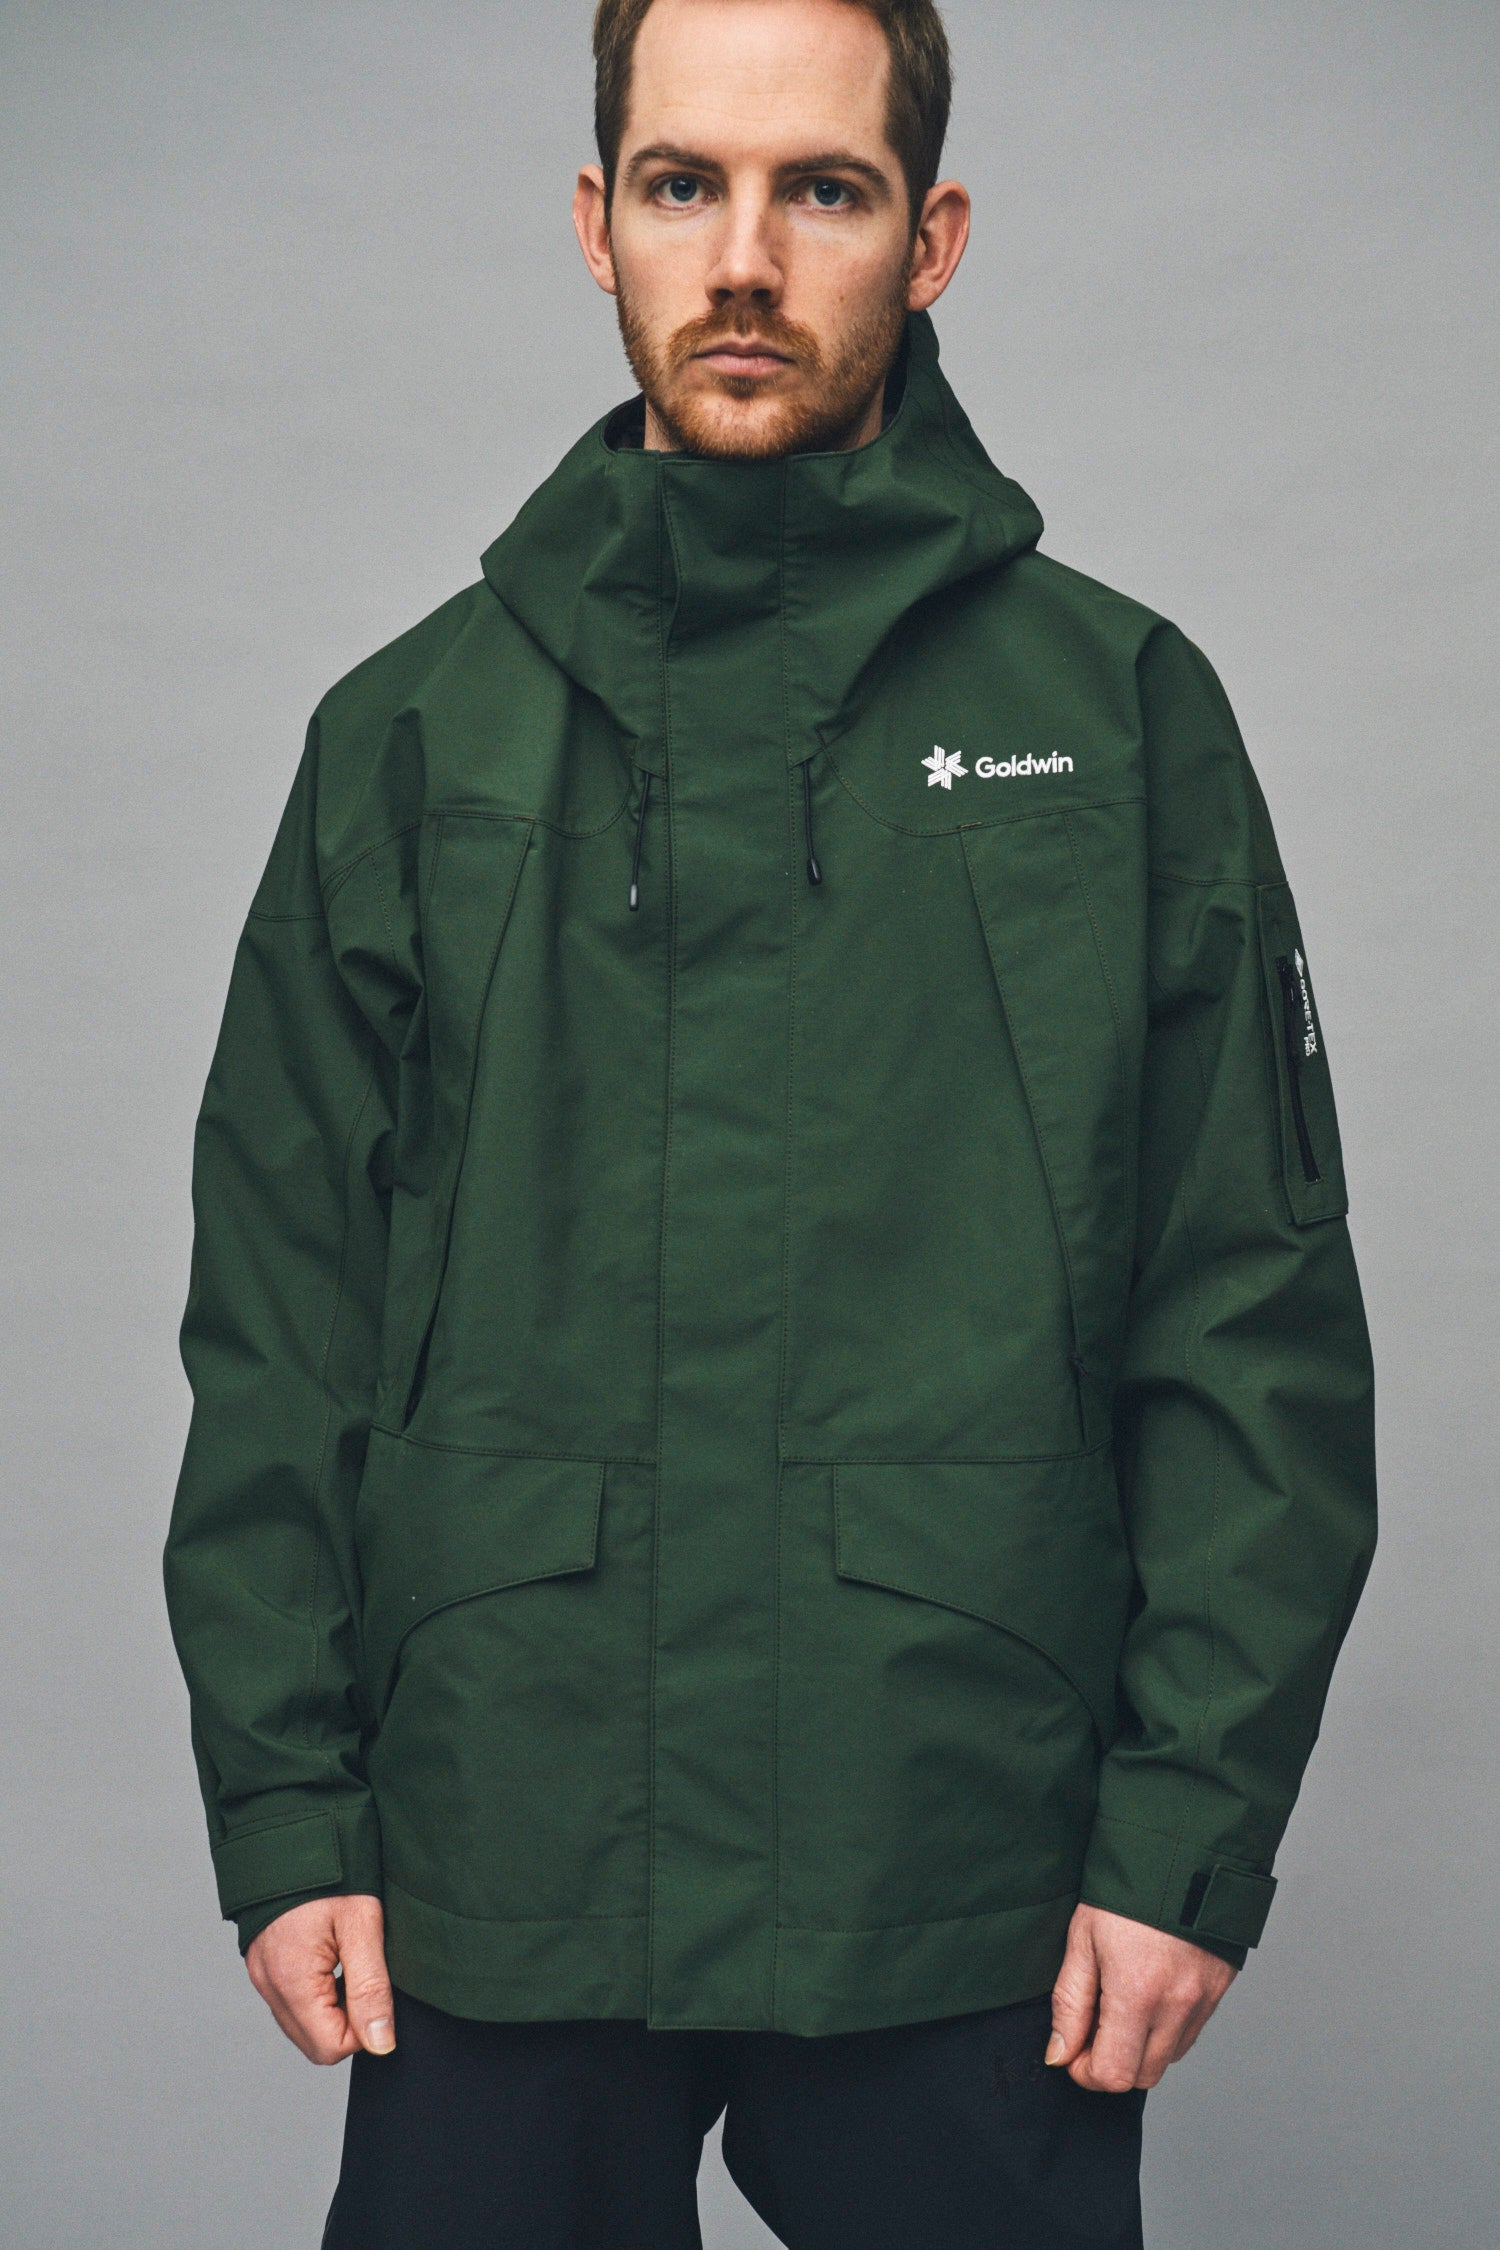 GORE-TEX SNOW DWELLERS JACKET